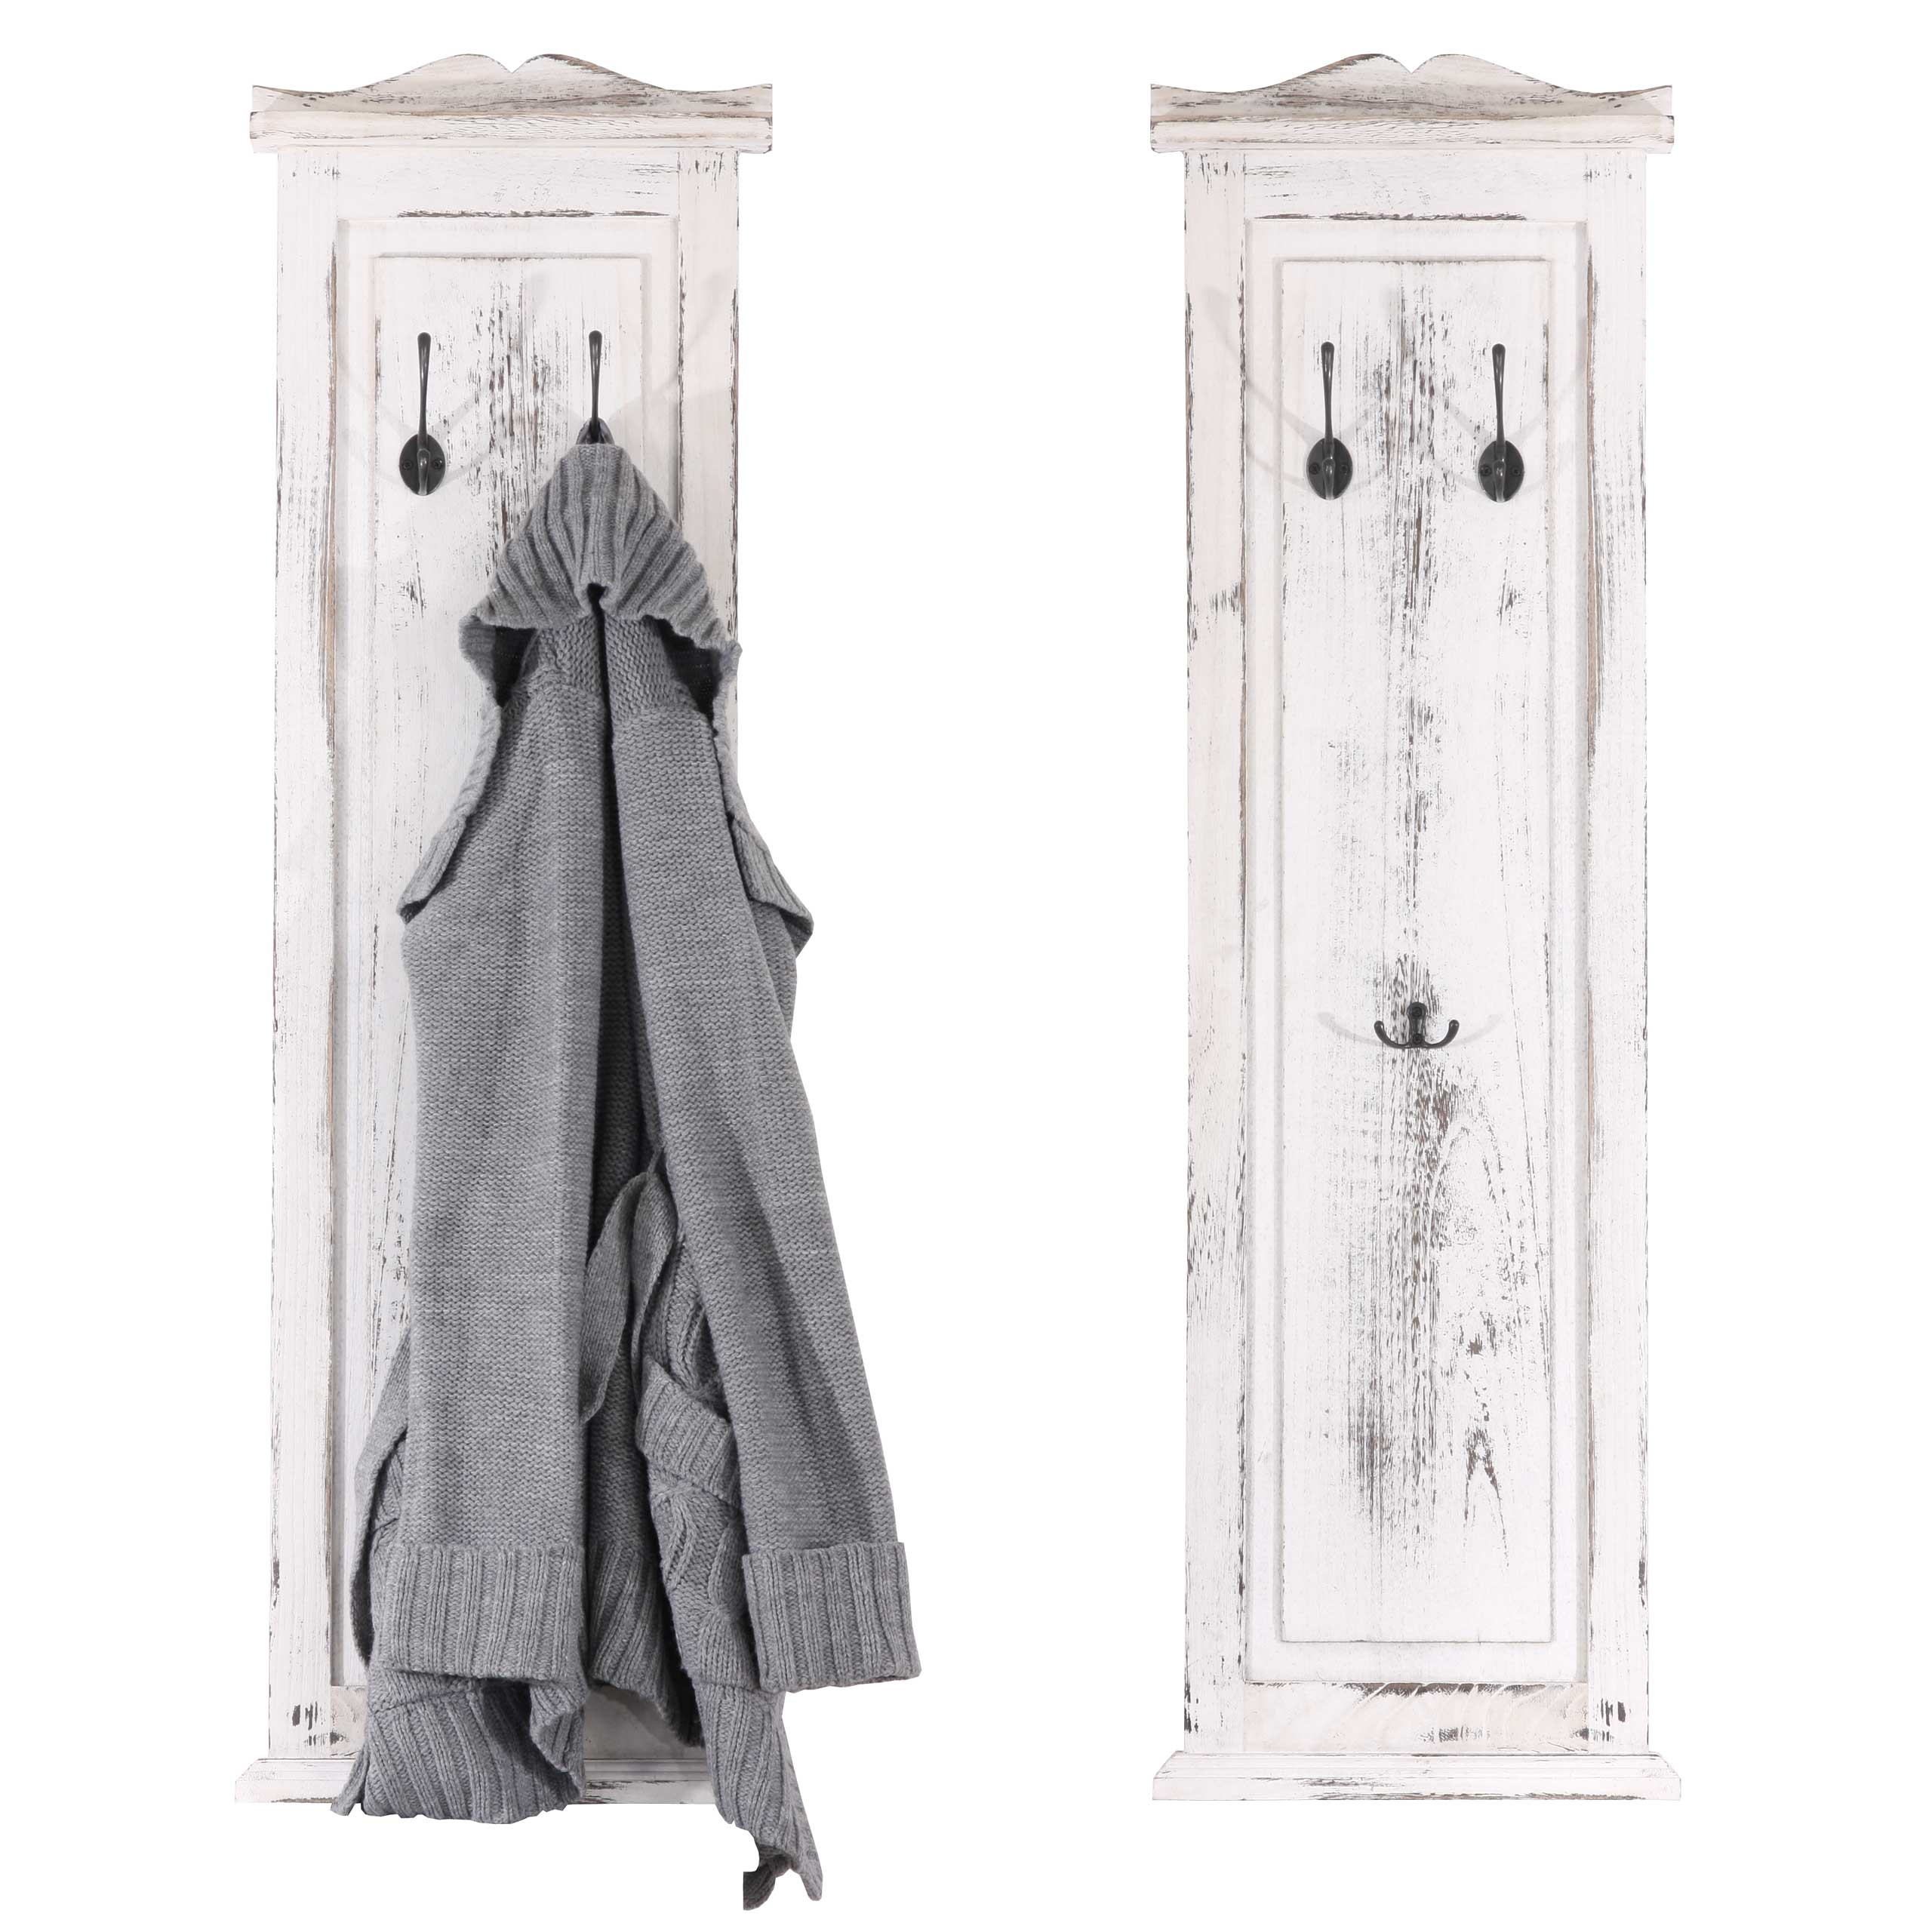 2x garderobe wandgarderobe wandhaken 109x28x3 5cm shabby. Black Bedroom Furniture Sets. Home Design Ideas